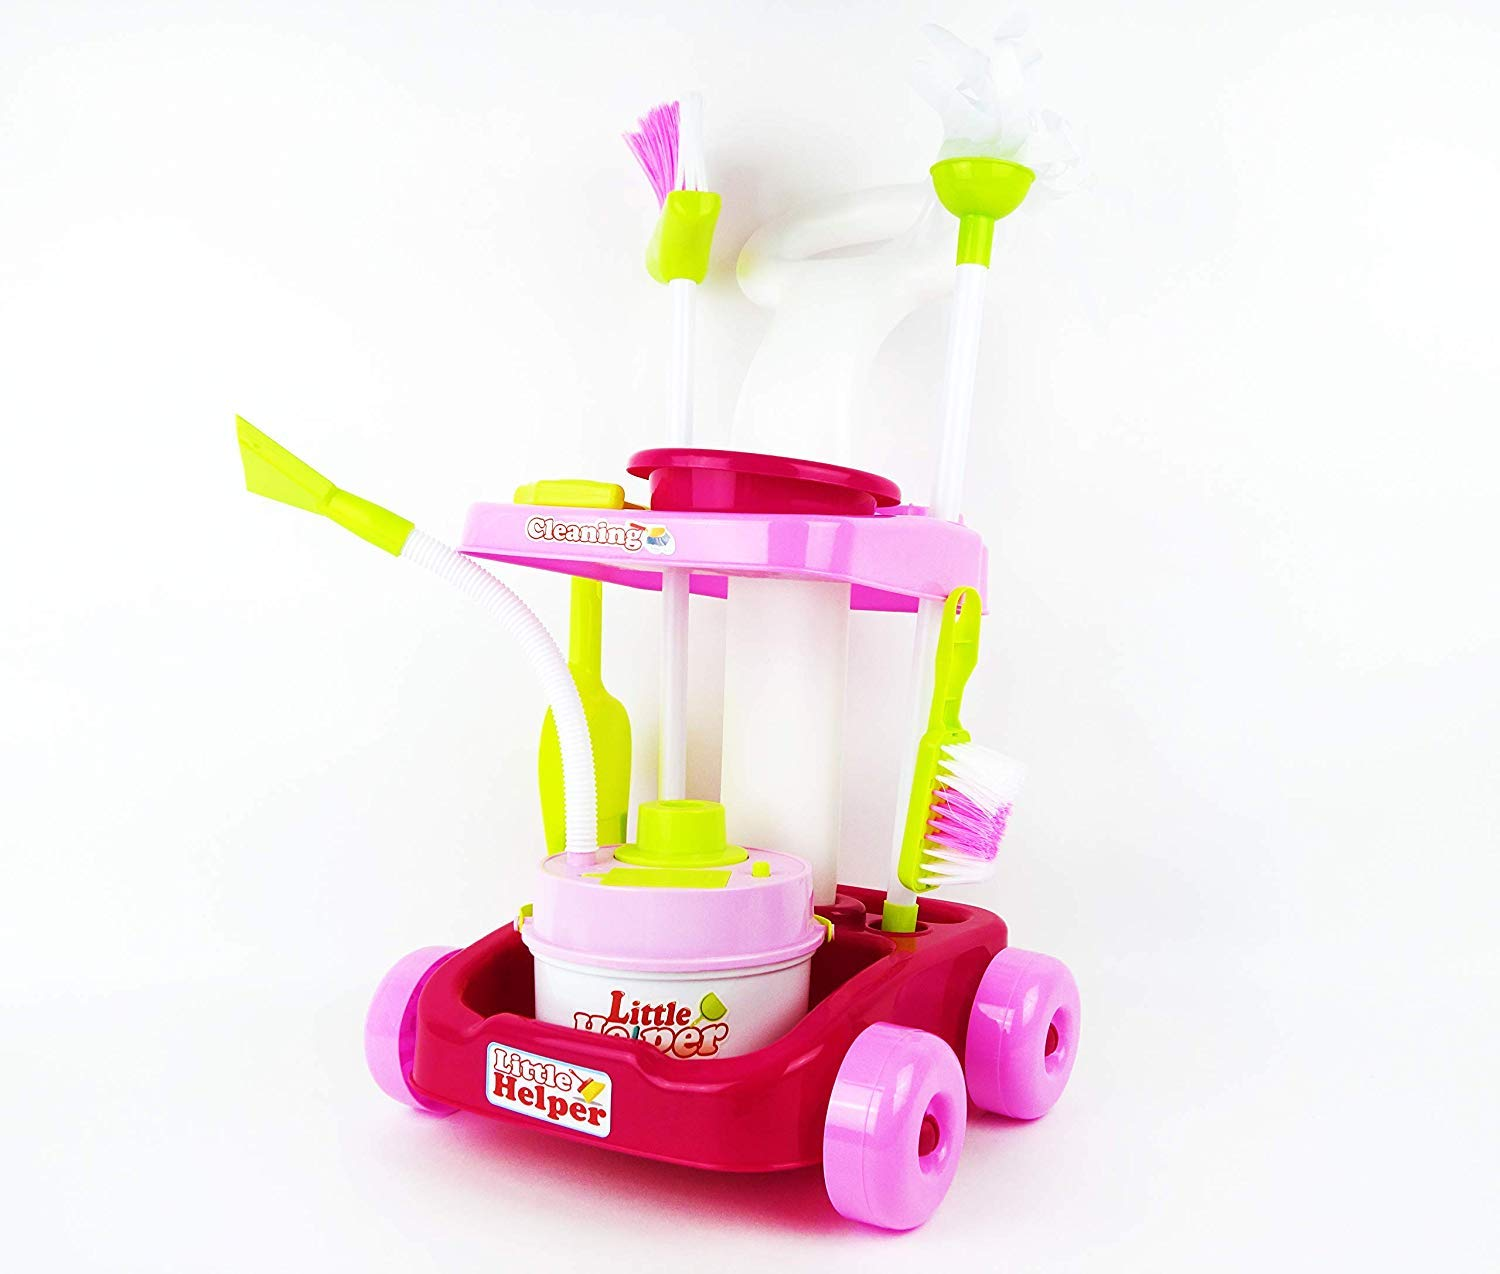 MeeYum Pretend Play Kids Little Helper Cleaning Trolley Cart with Vacuum, Broom, and Supplies; Includes Scrub Brush, Shovel and Accessories by MeeYum